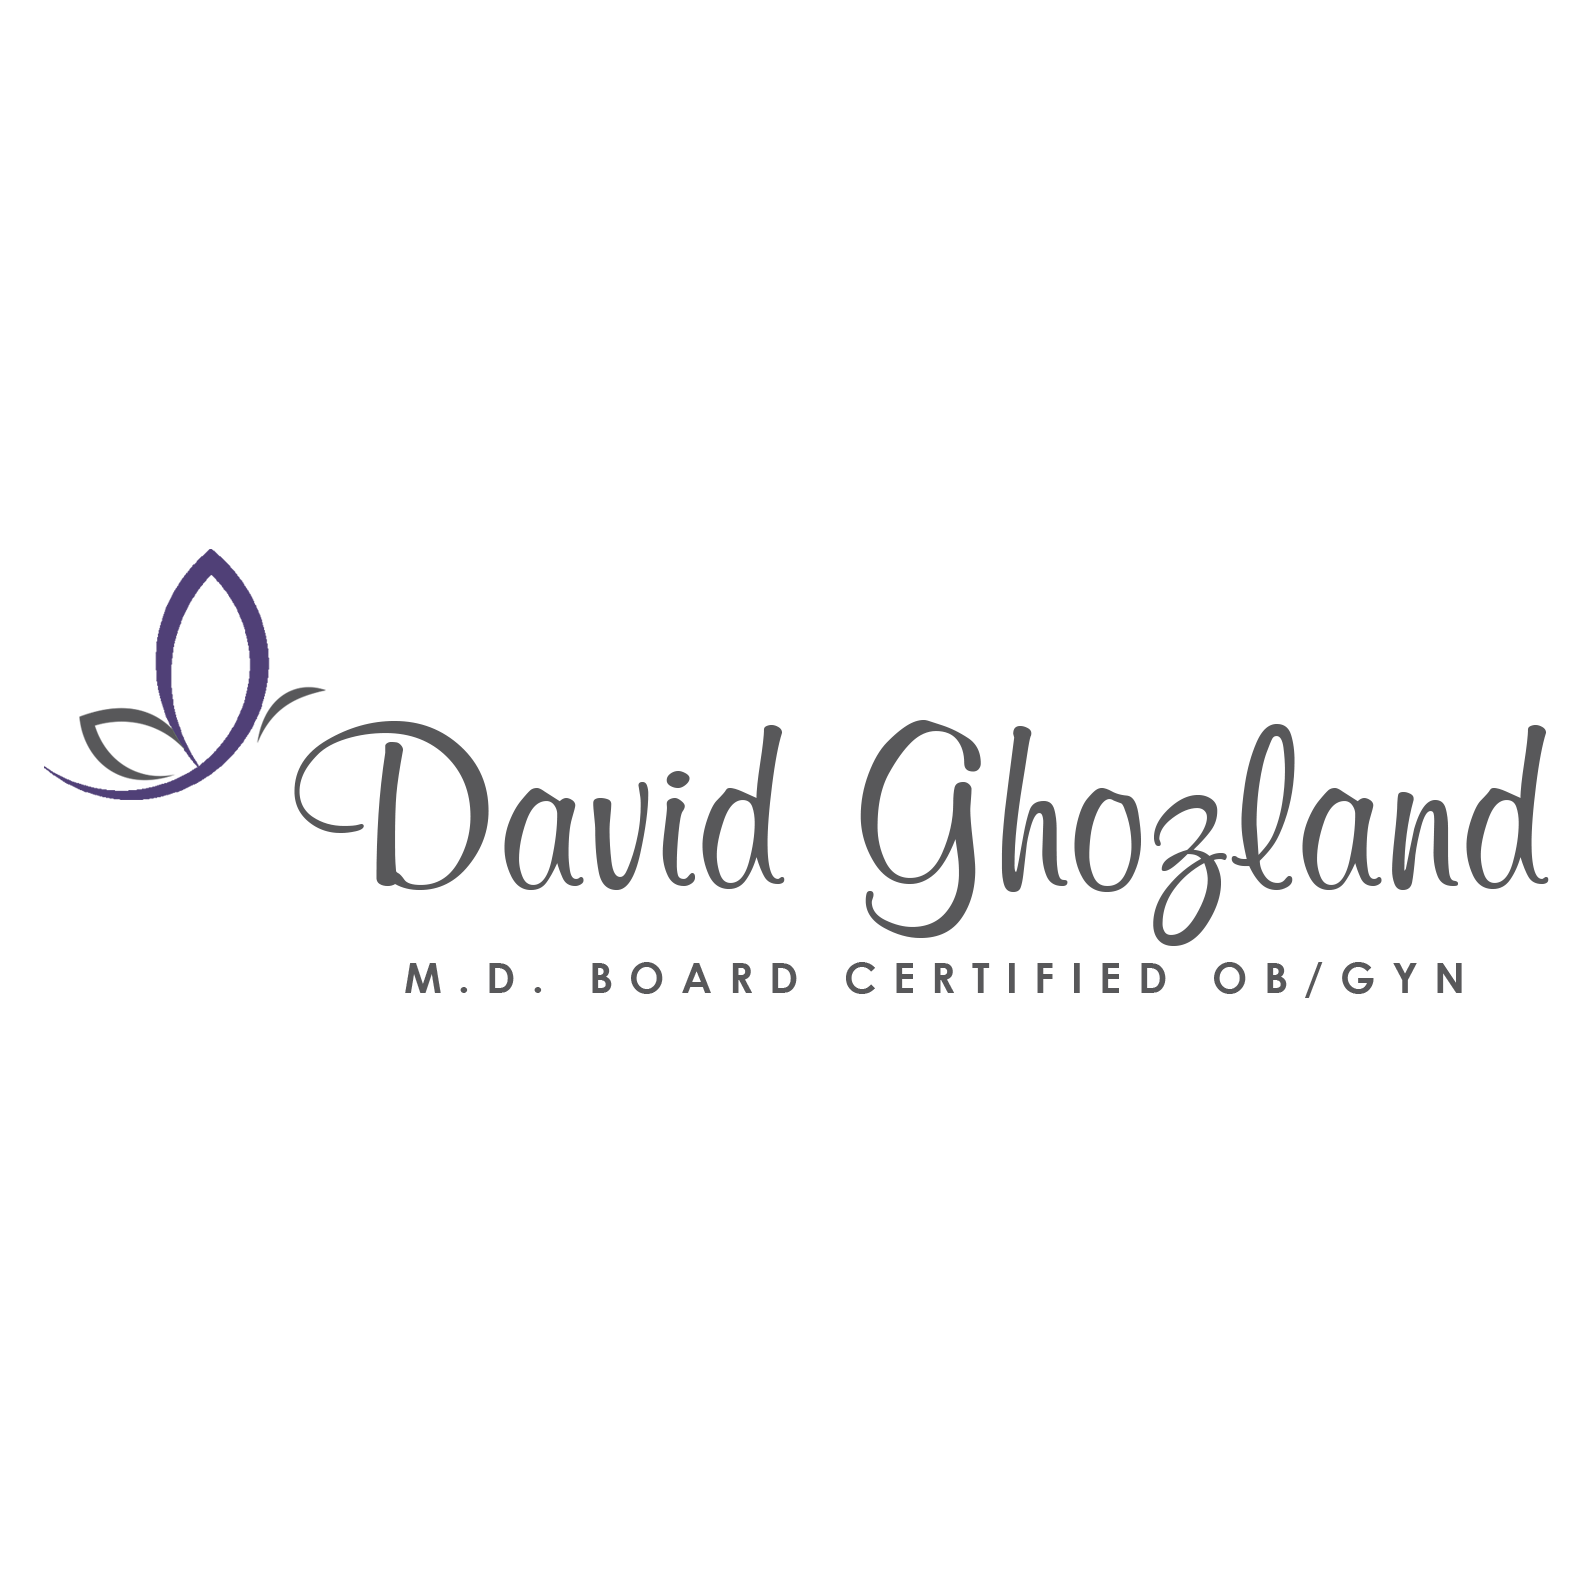 David Ghozland, M.D., INC. Logo